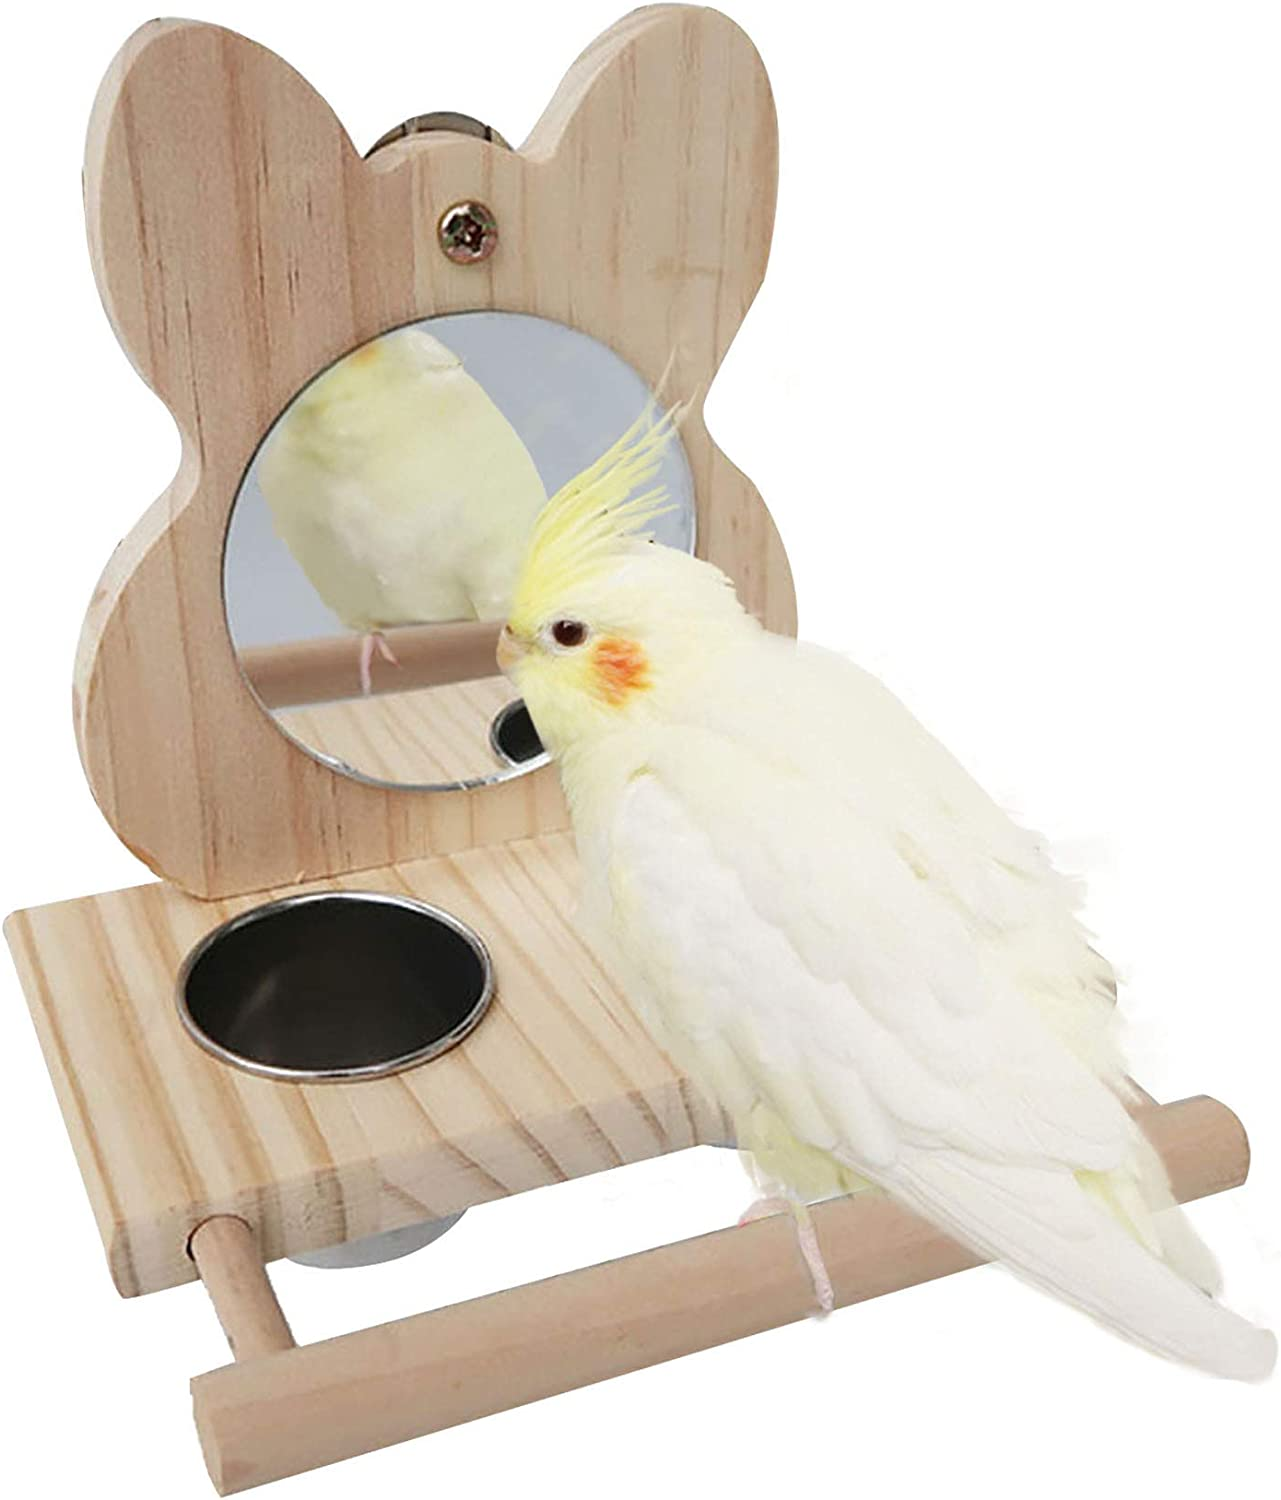 Hamiledyi Parrot Mirror Toy with Stainless Steel Feeding Cups Bird Wooden Frames with Cage Perch for Macaw African Greys Budgies Parakeet Cockatiels Conure Lovebird Finch